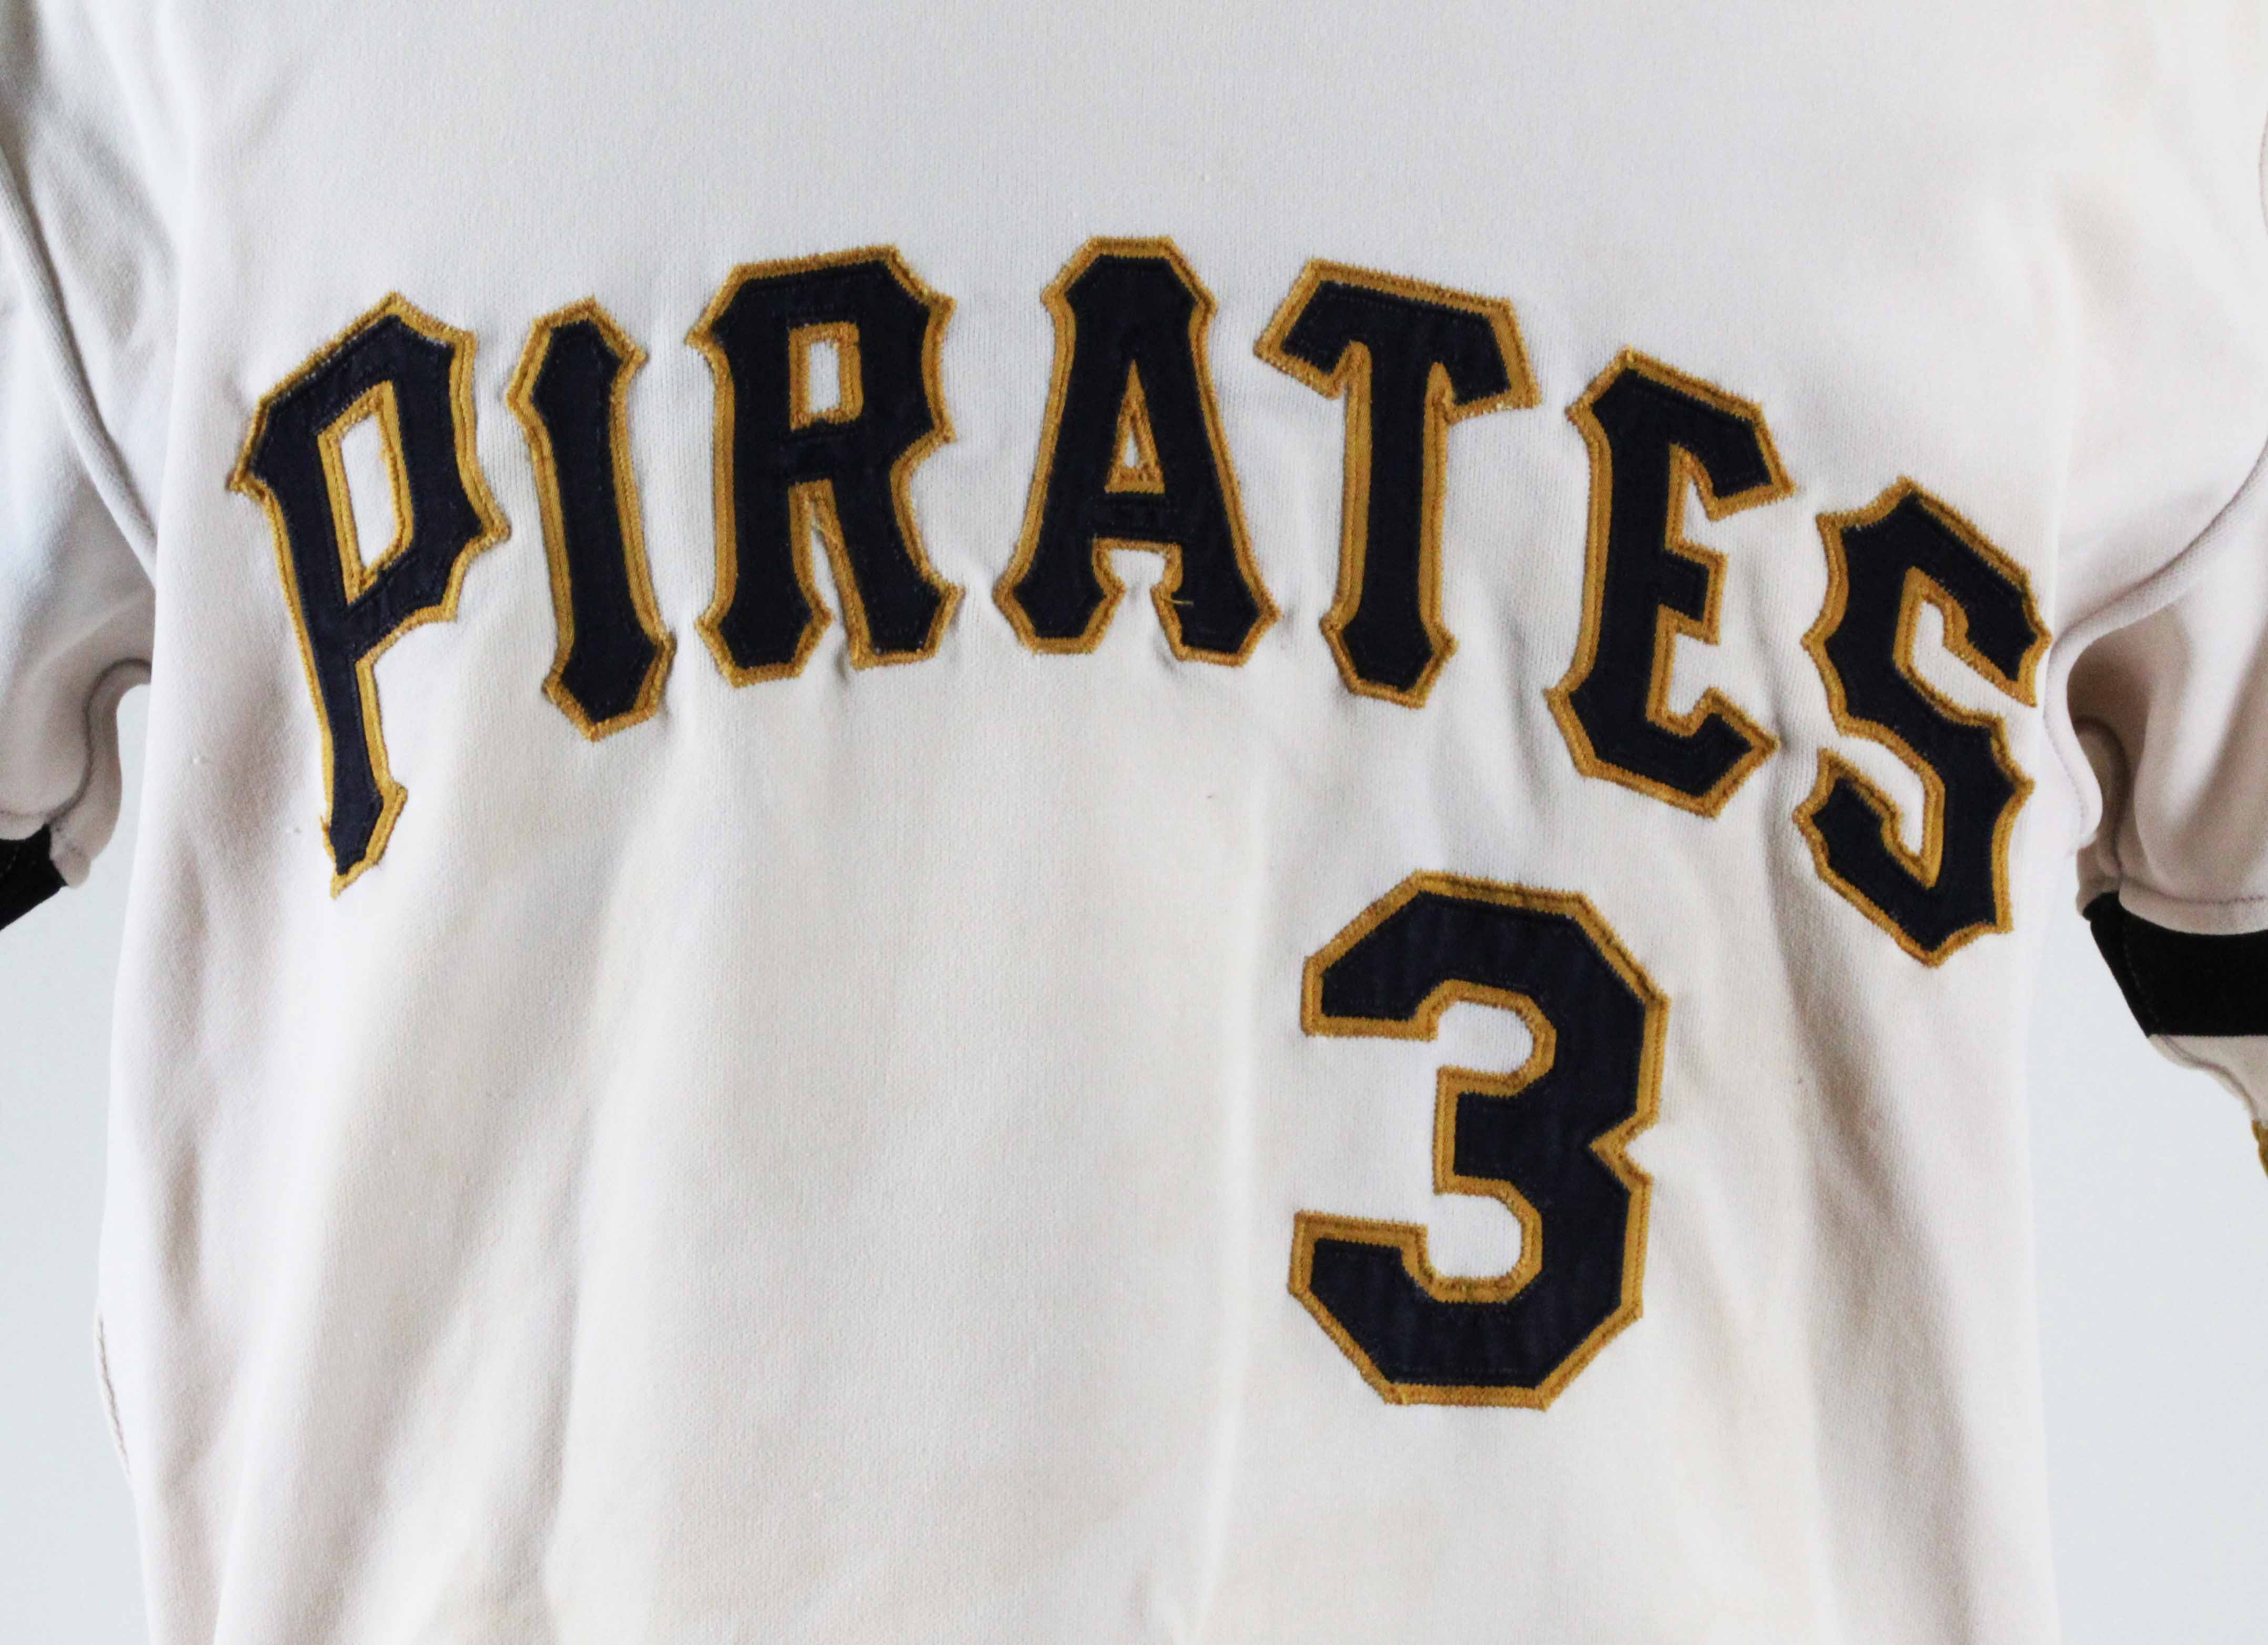 354dfee3c48 ... buy 1974 richie hebner game worn jersey pirates coa 100 authentic team  449a4 8f6aa